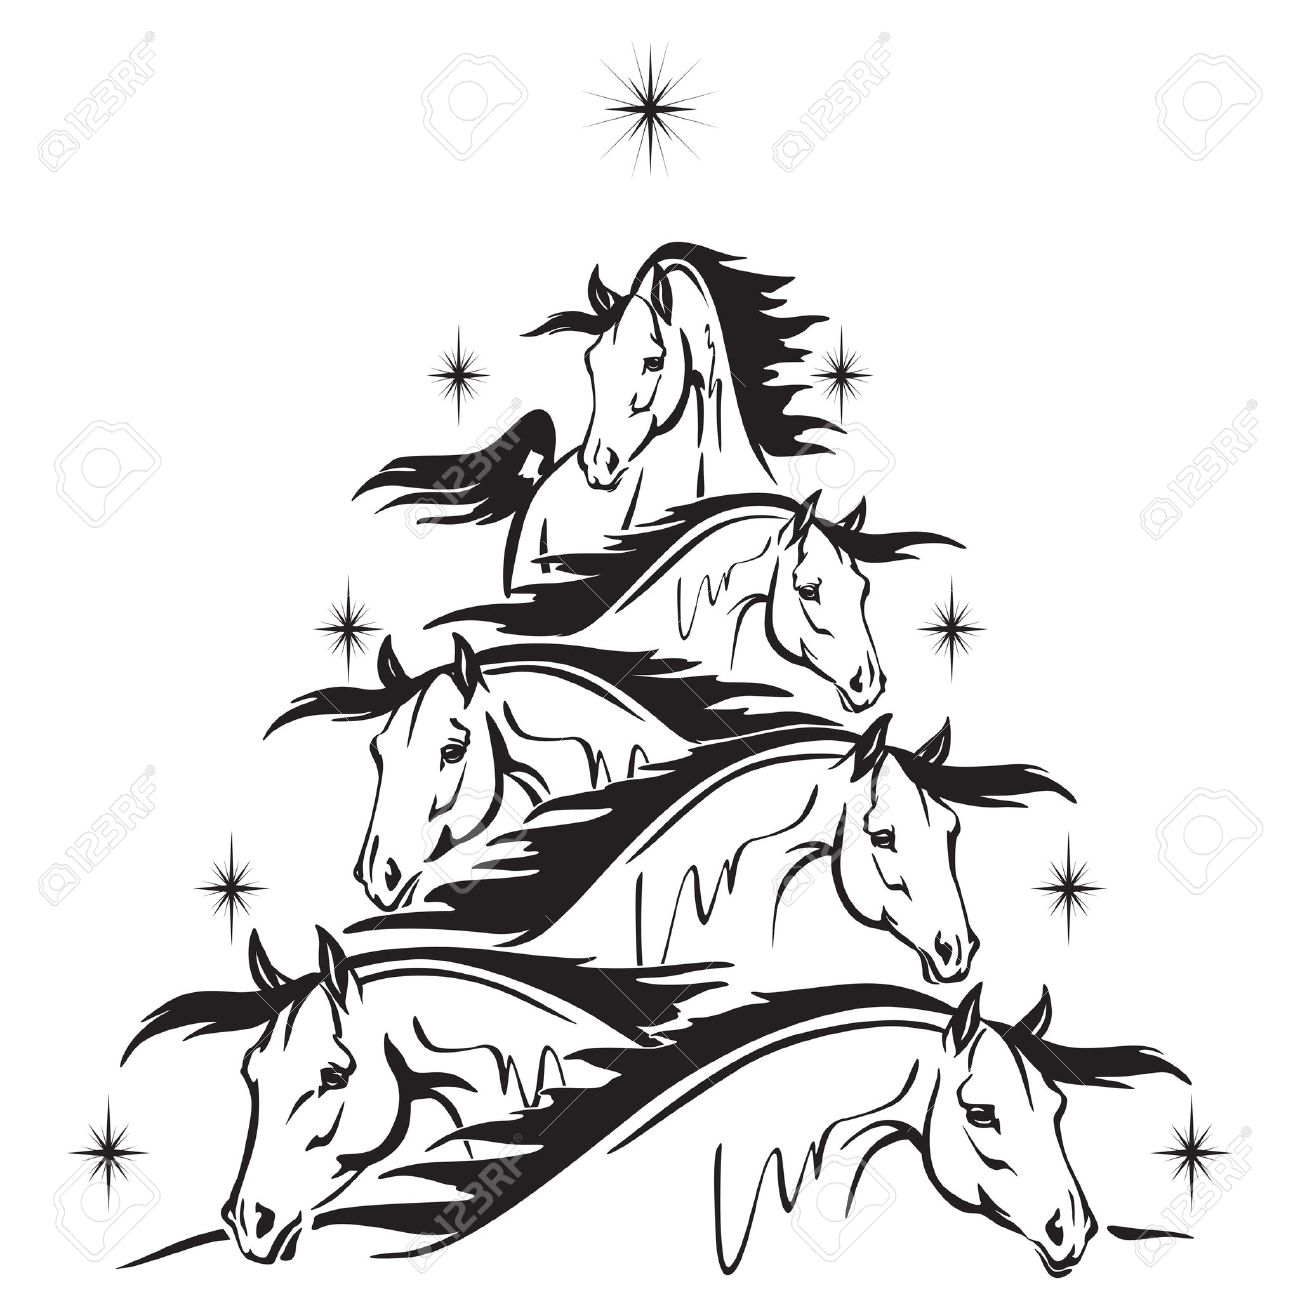 Christmas Tree Of Horses Heads Royalty Free Cliparts Vectors And Stock Illustration Image 32505961